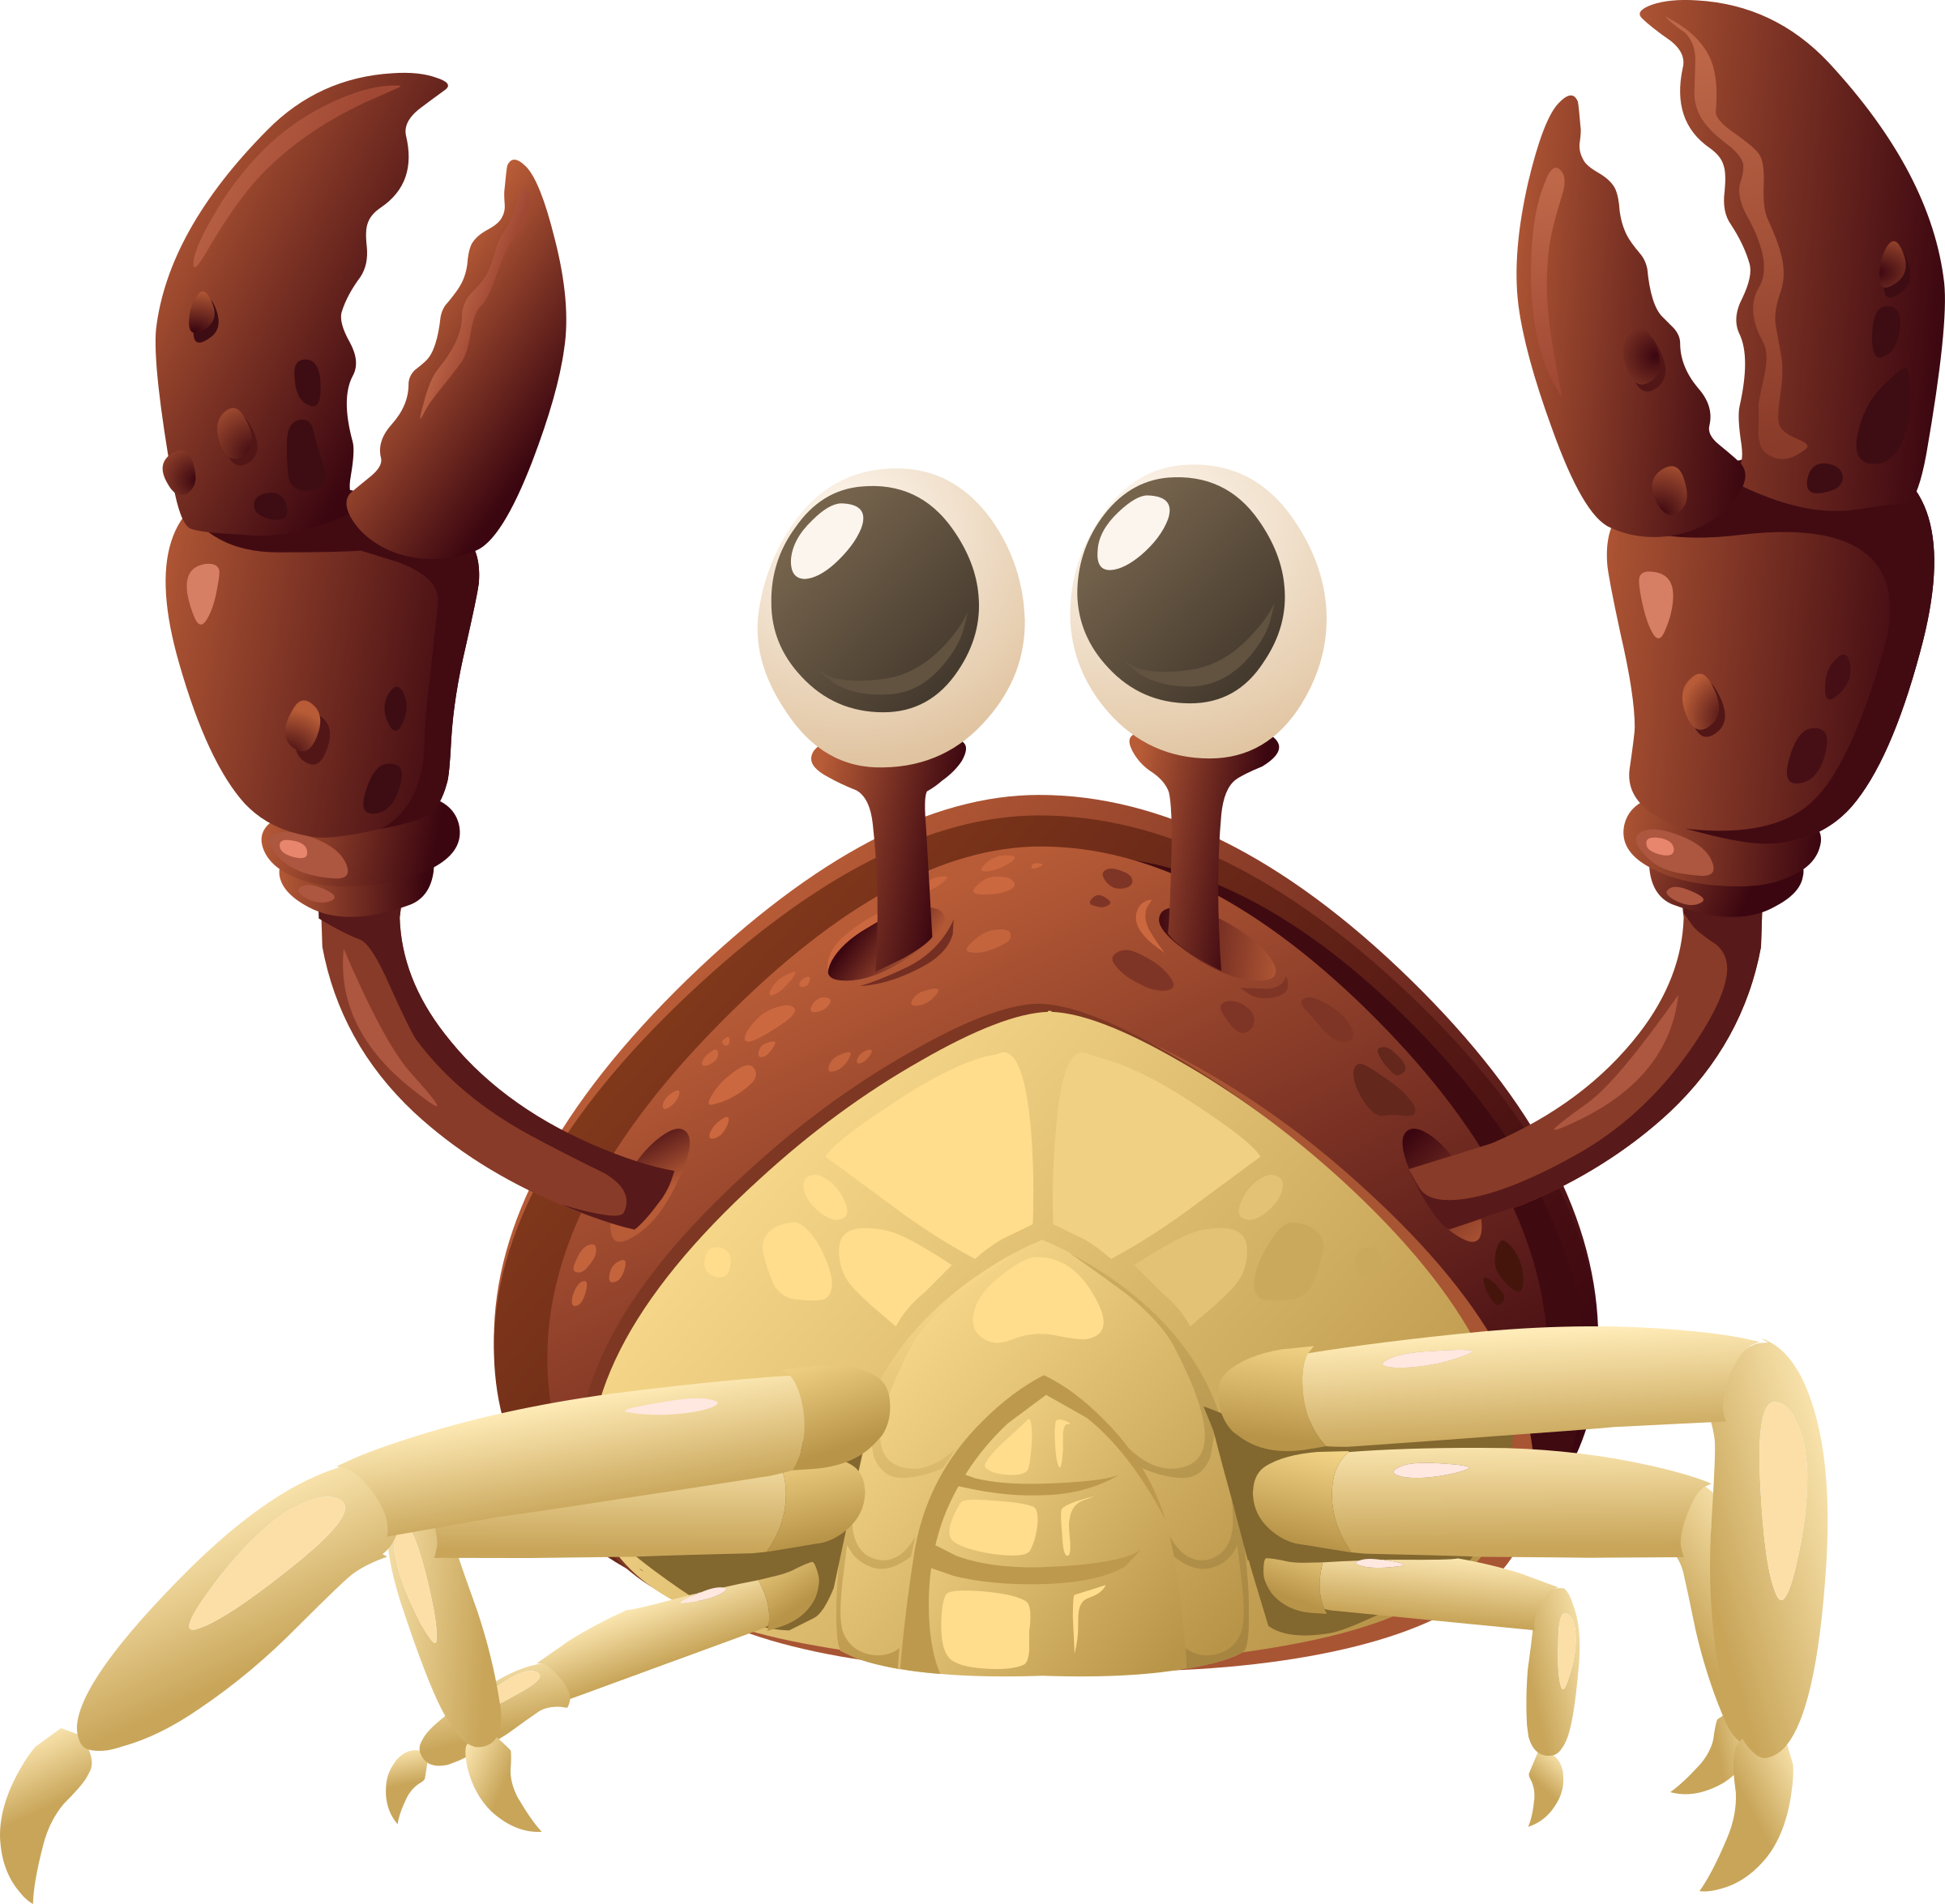 Inhabitants Npc Crab by glitch